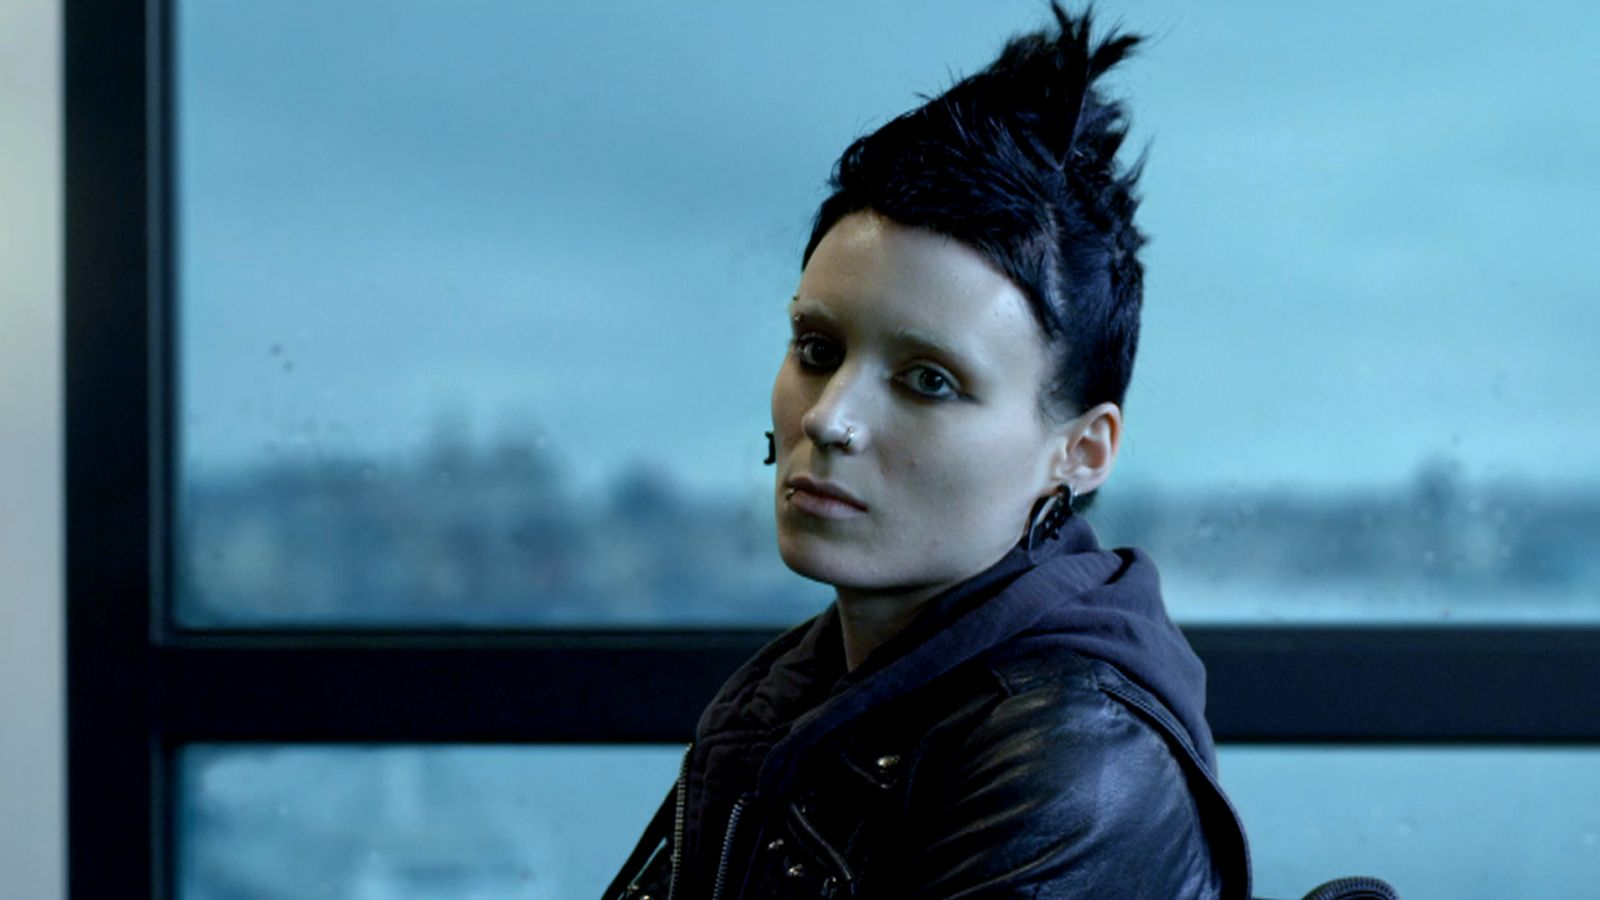 The Girl With The Dragon Tattoo Sequel Is Now Officially On The